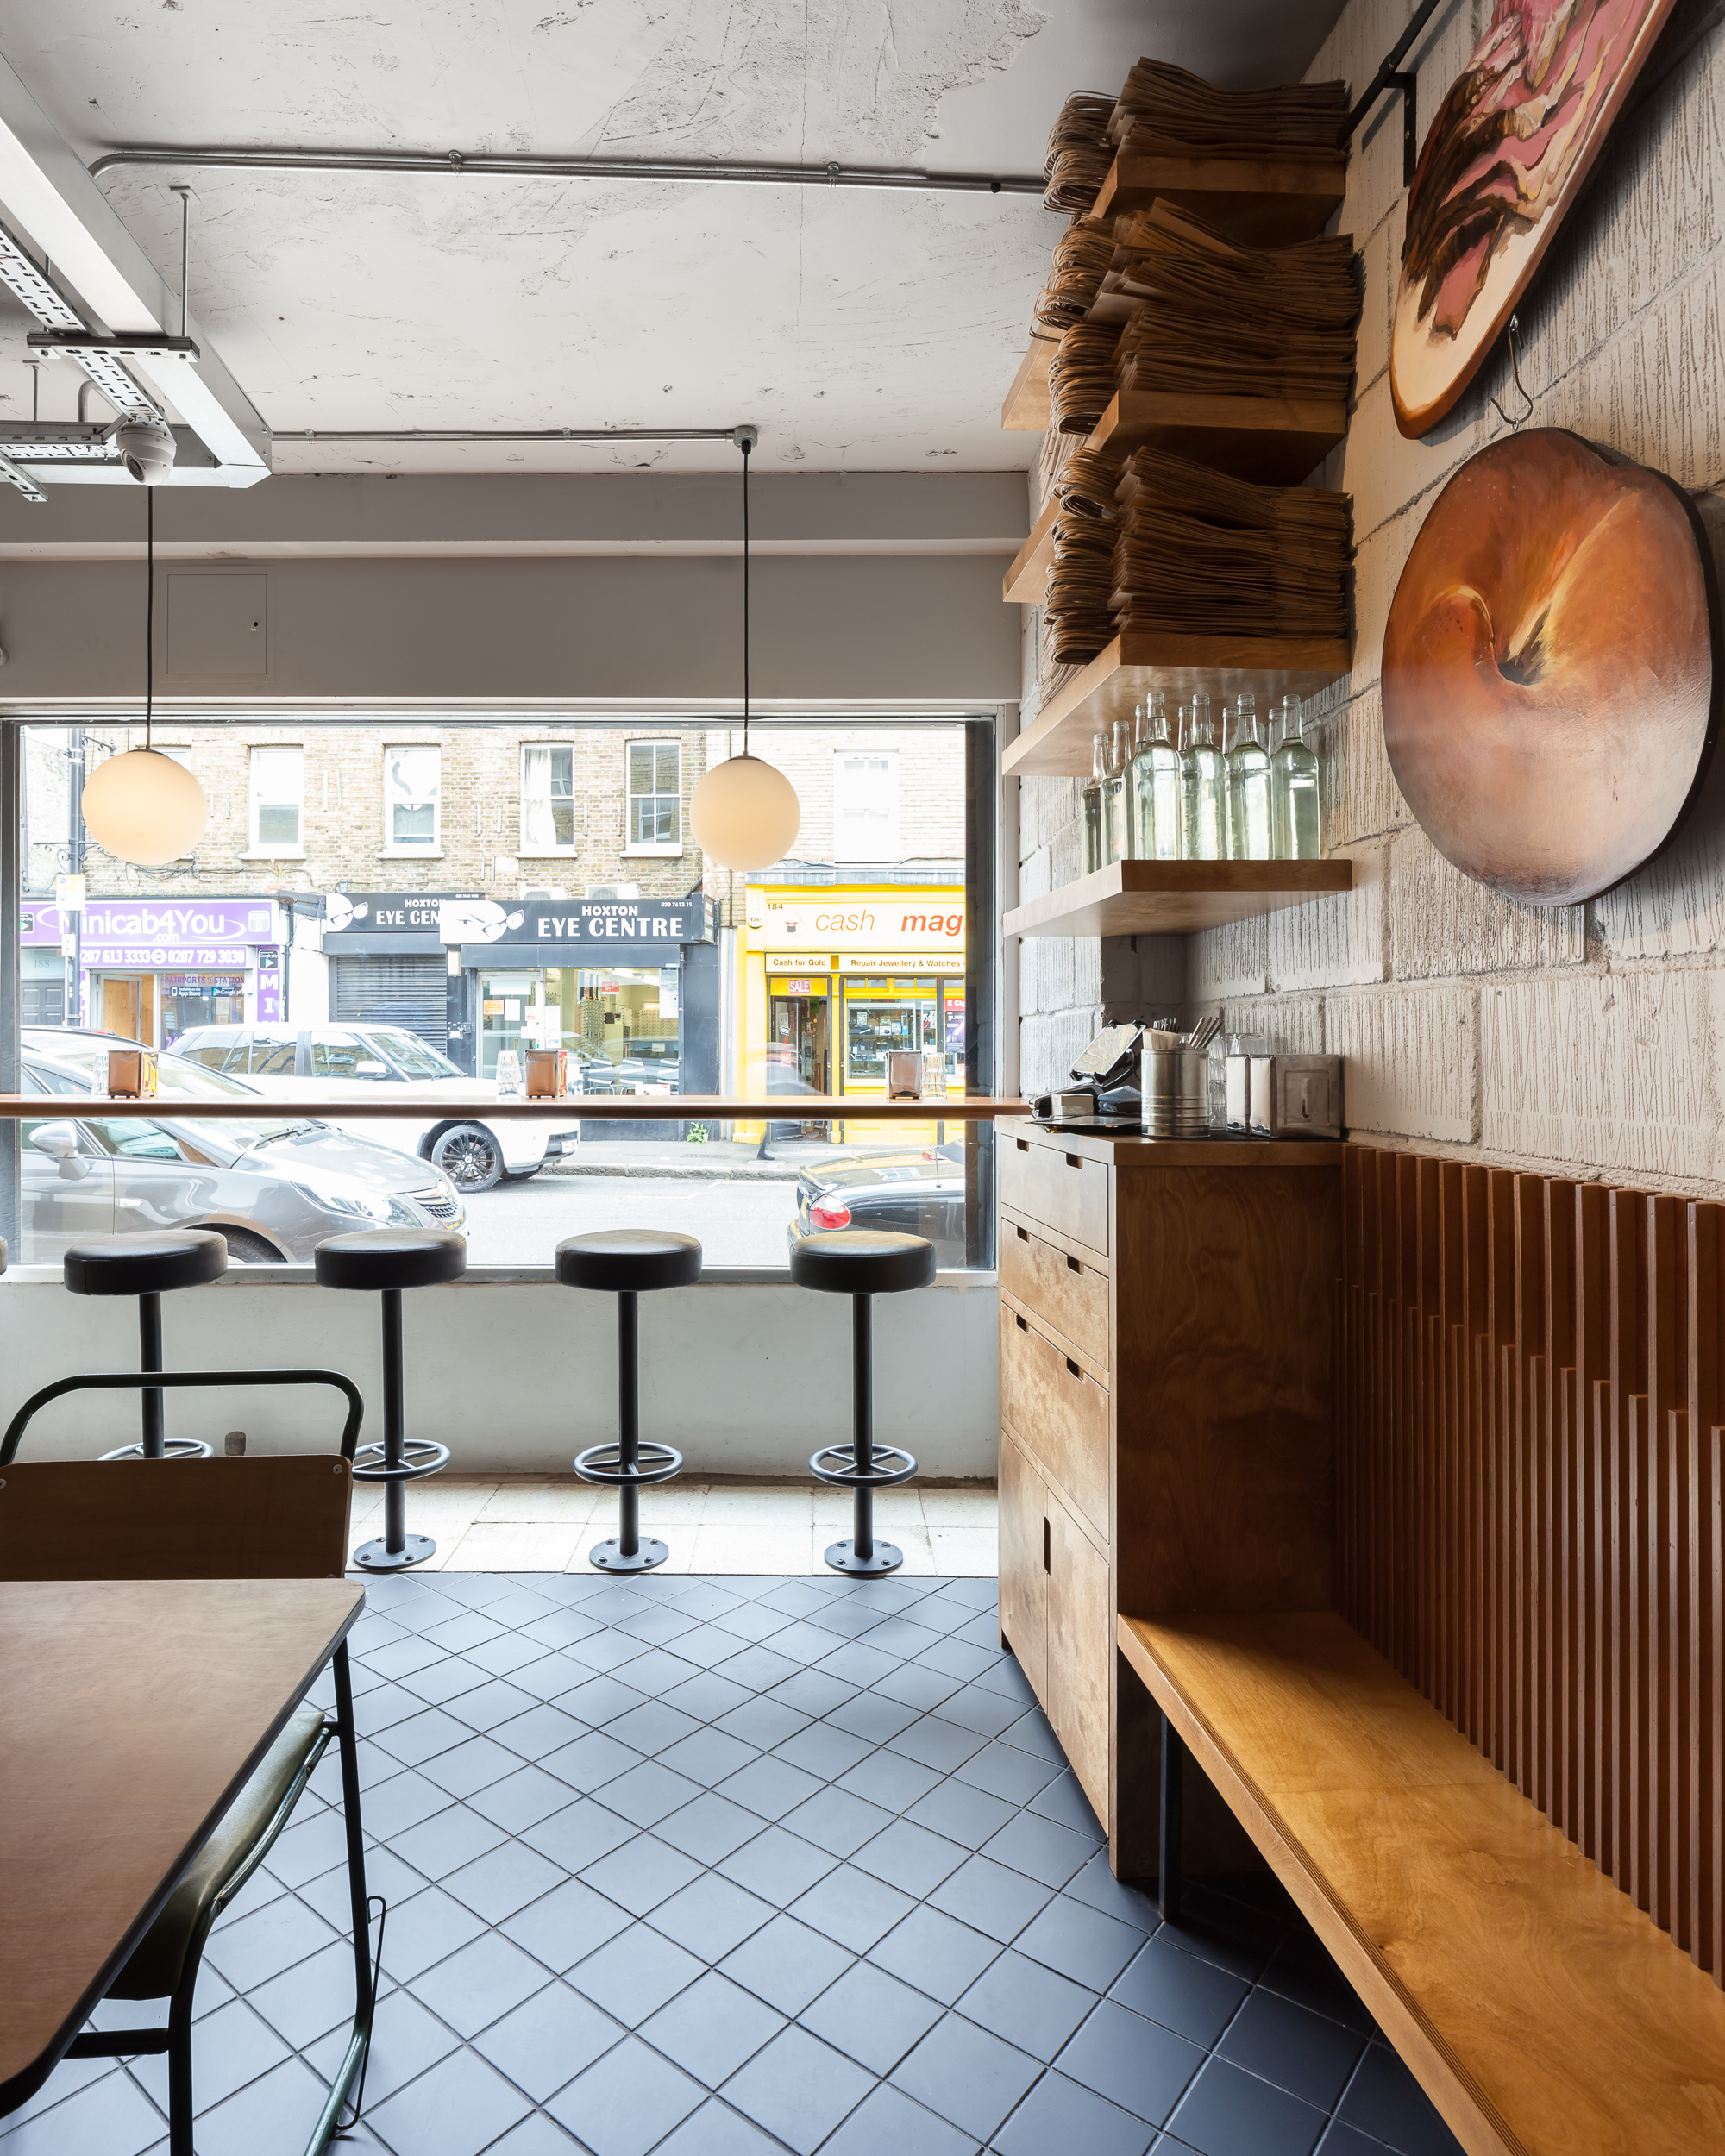 Pano_0457_0463-Edit - MATA_Architects_Montys_Deli.jpg